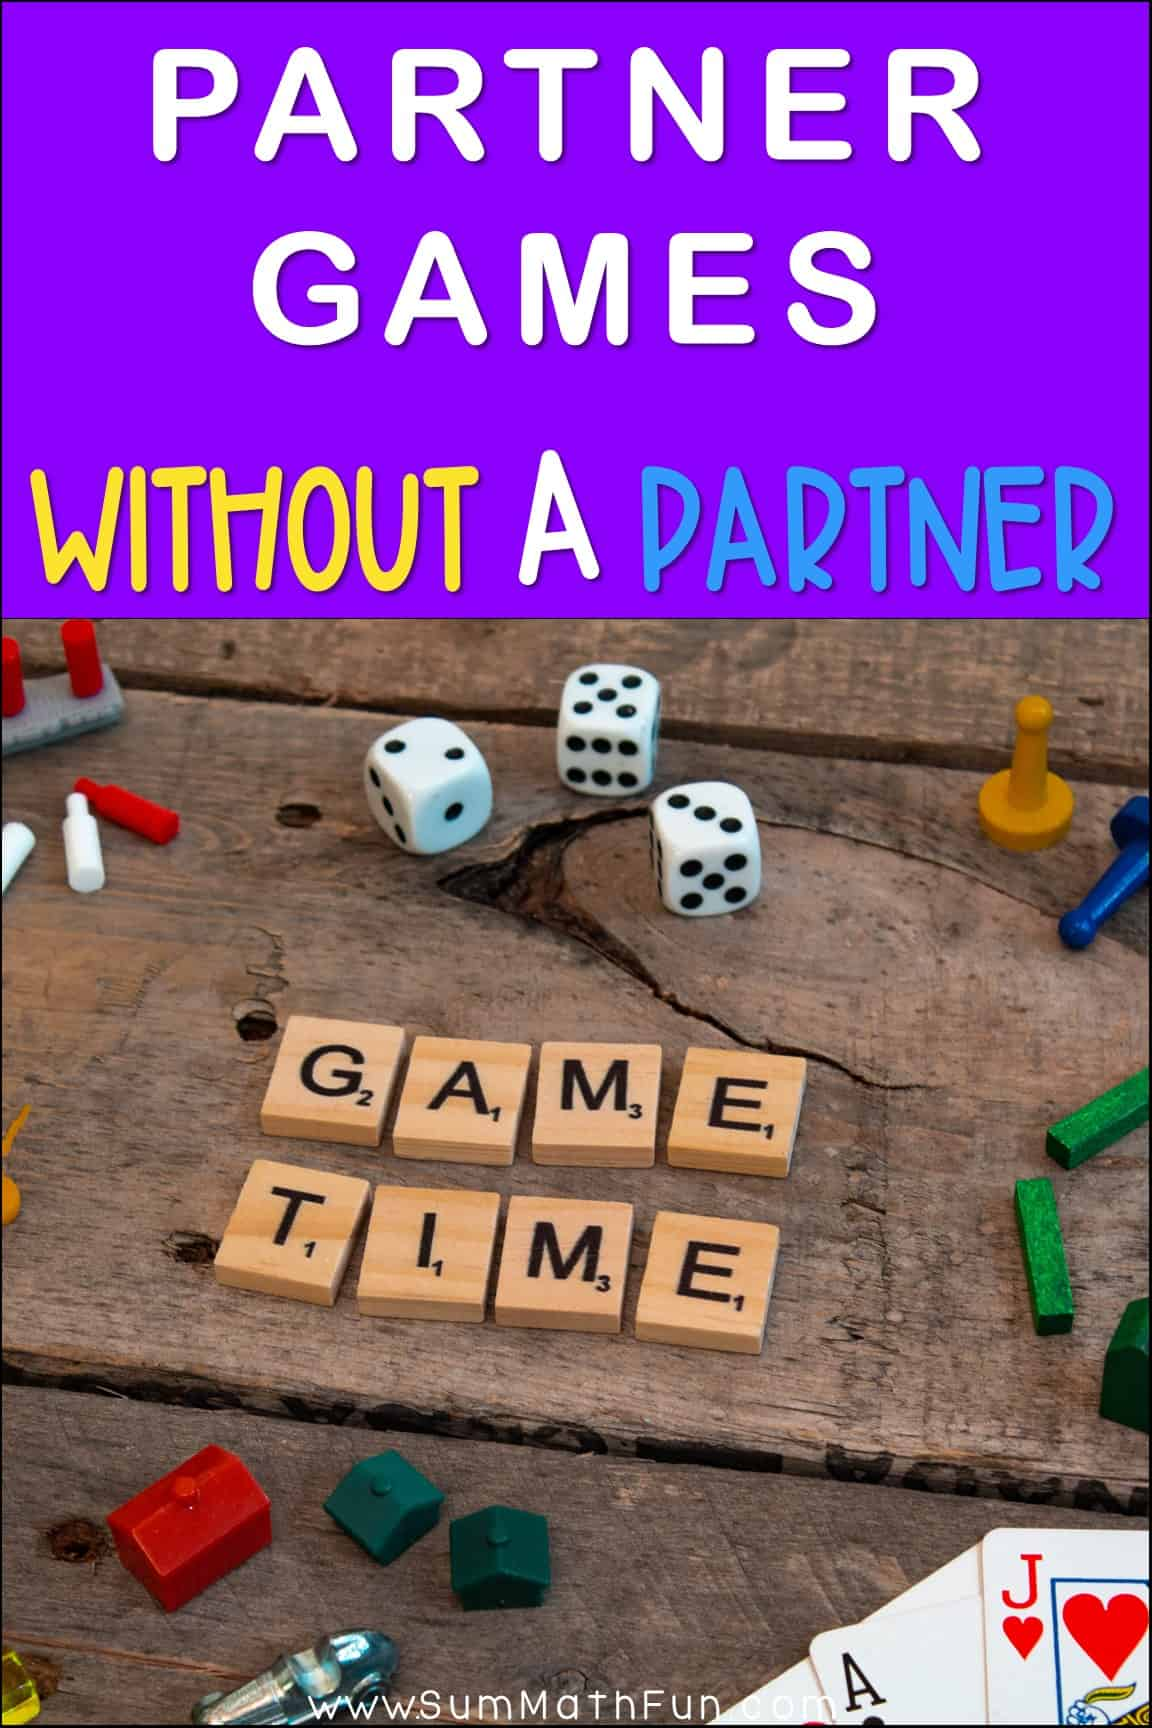 Partner Games Without a Partner - A Pandemic Solution